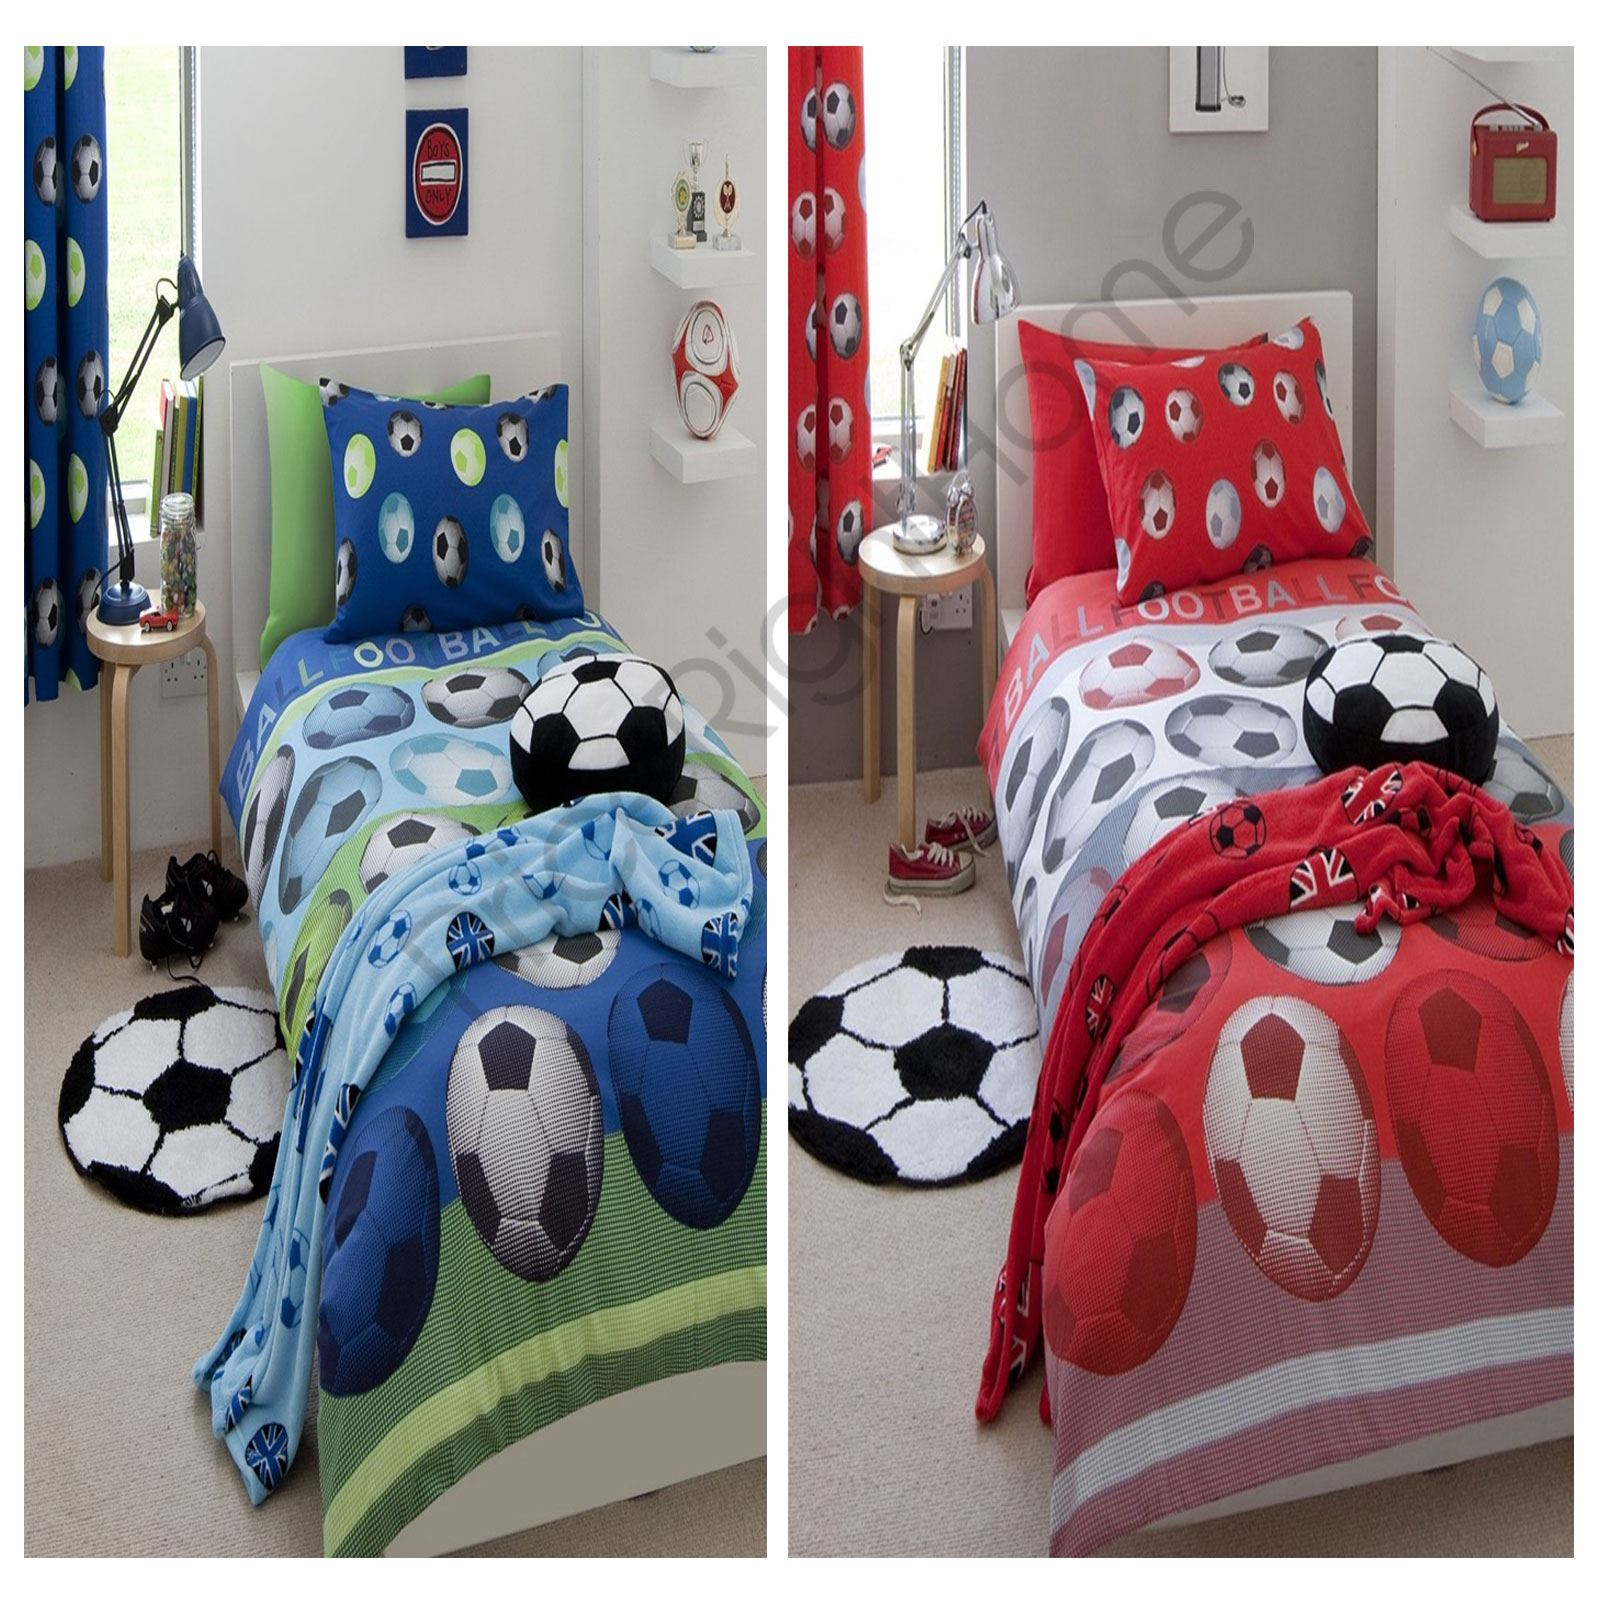 shop home duvet unicorn bedroom lansfield gifts bedding set kids catherine pink mcelhinneys